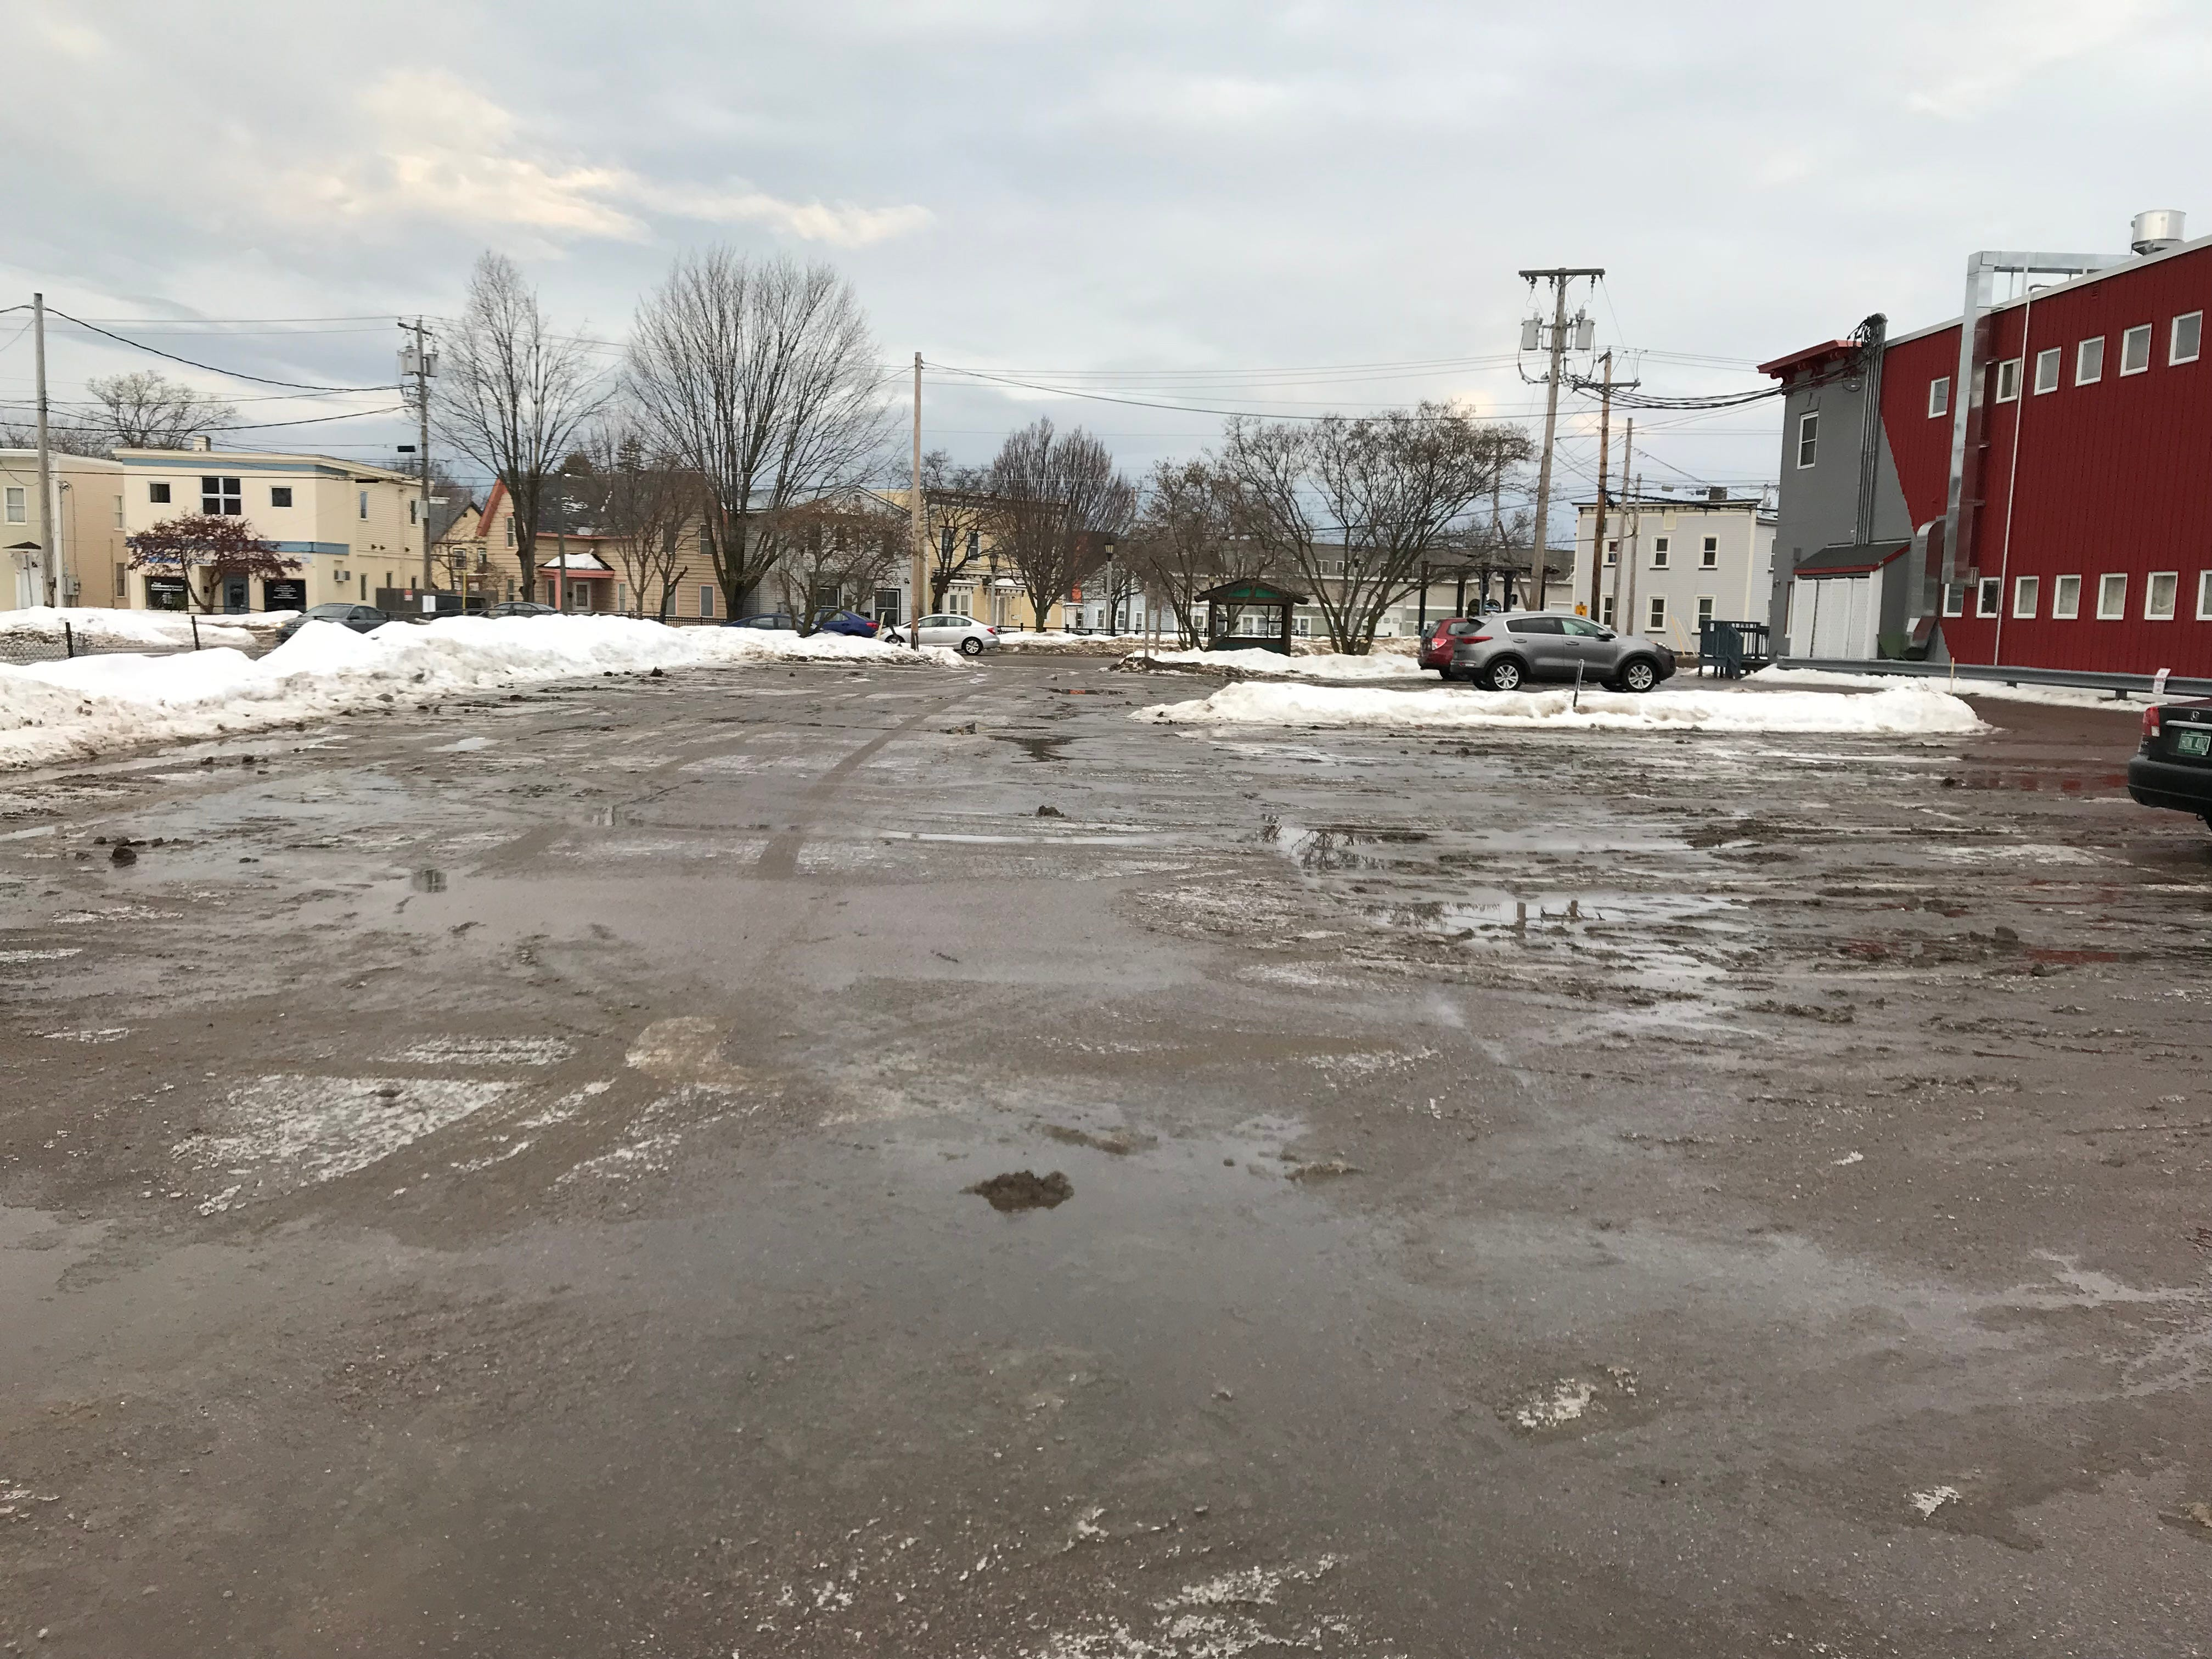 The parking lot of 294 N. Winooski Ave. in Burlington on Monday morning of Feb. 4, 2019. A University of Vermont student was found unconscious at this location on Saturday and was declared dead at the scene.